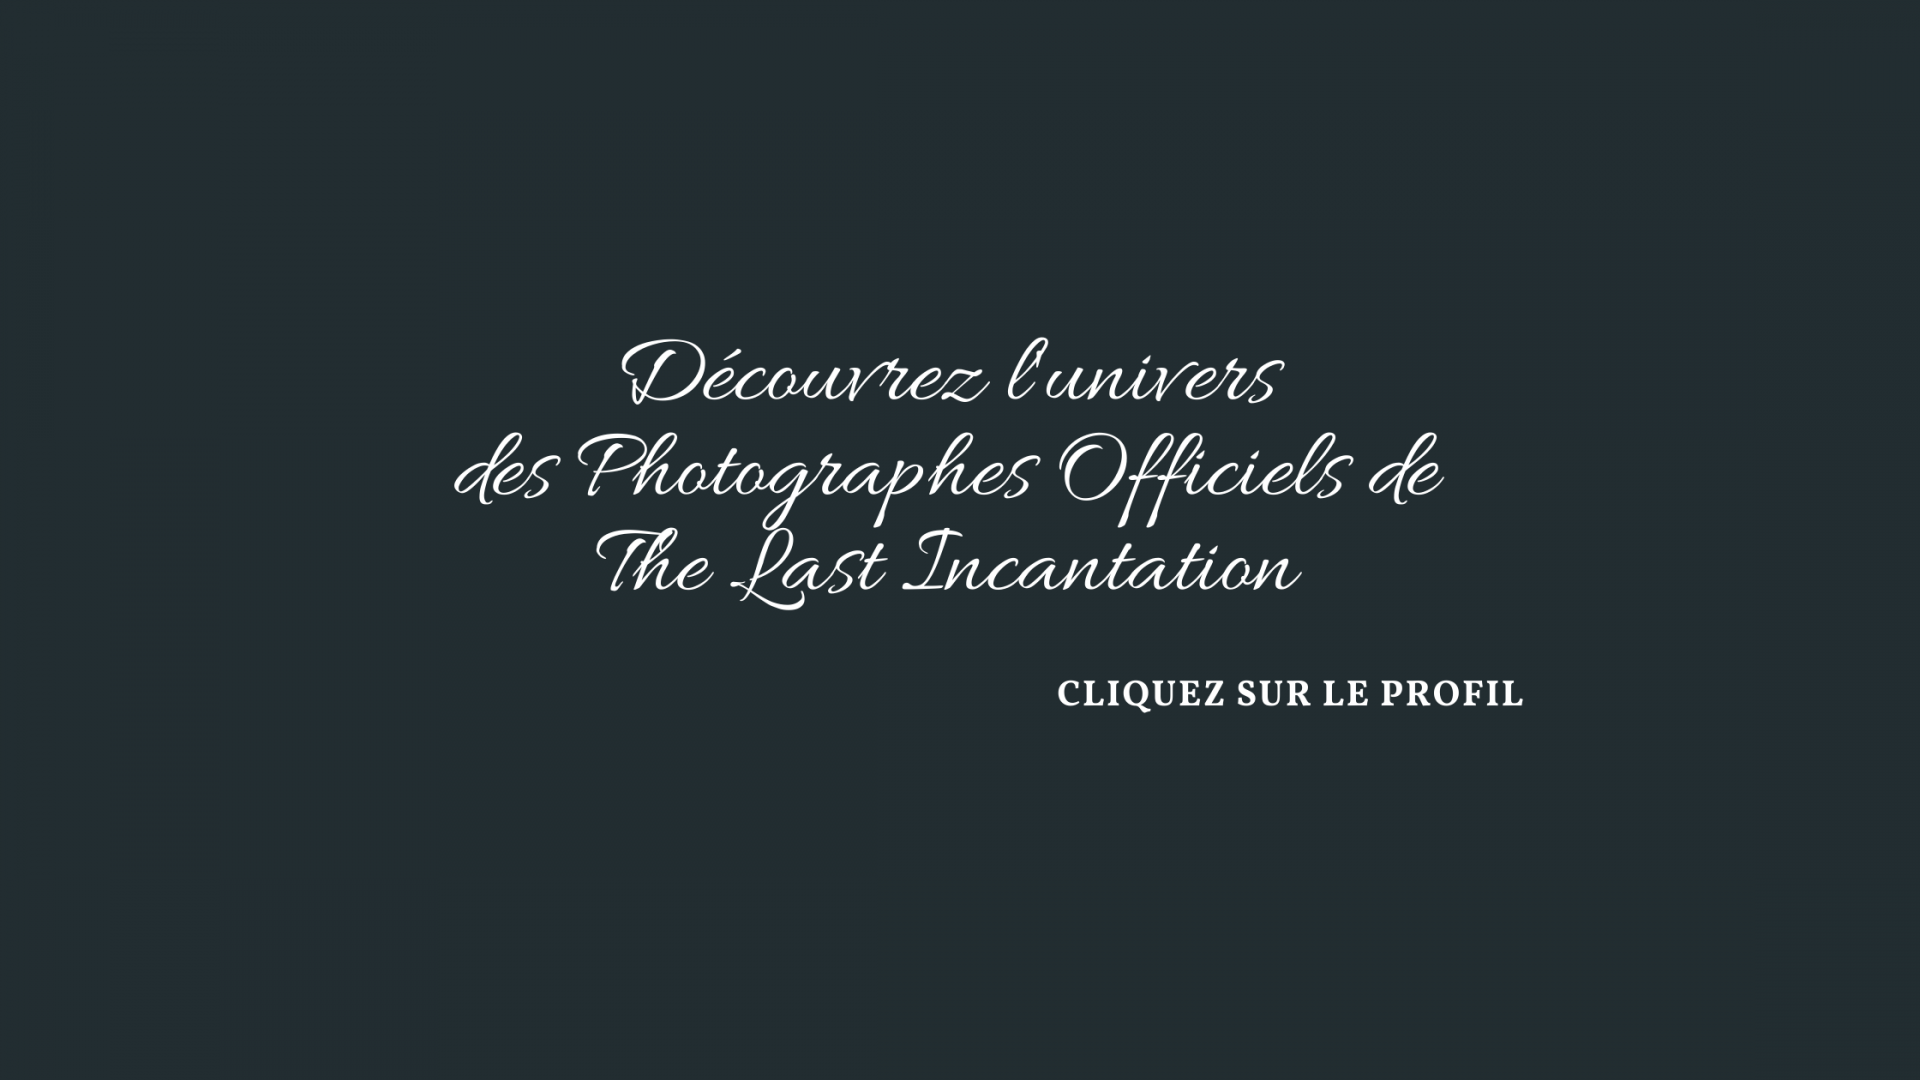 Decouvrez l univers des photographes officiels de the last incantaion 2